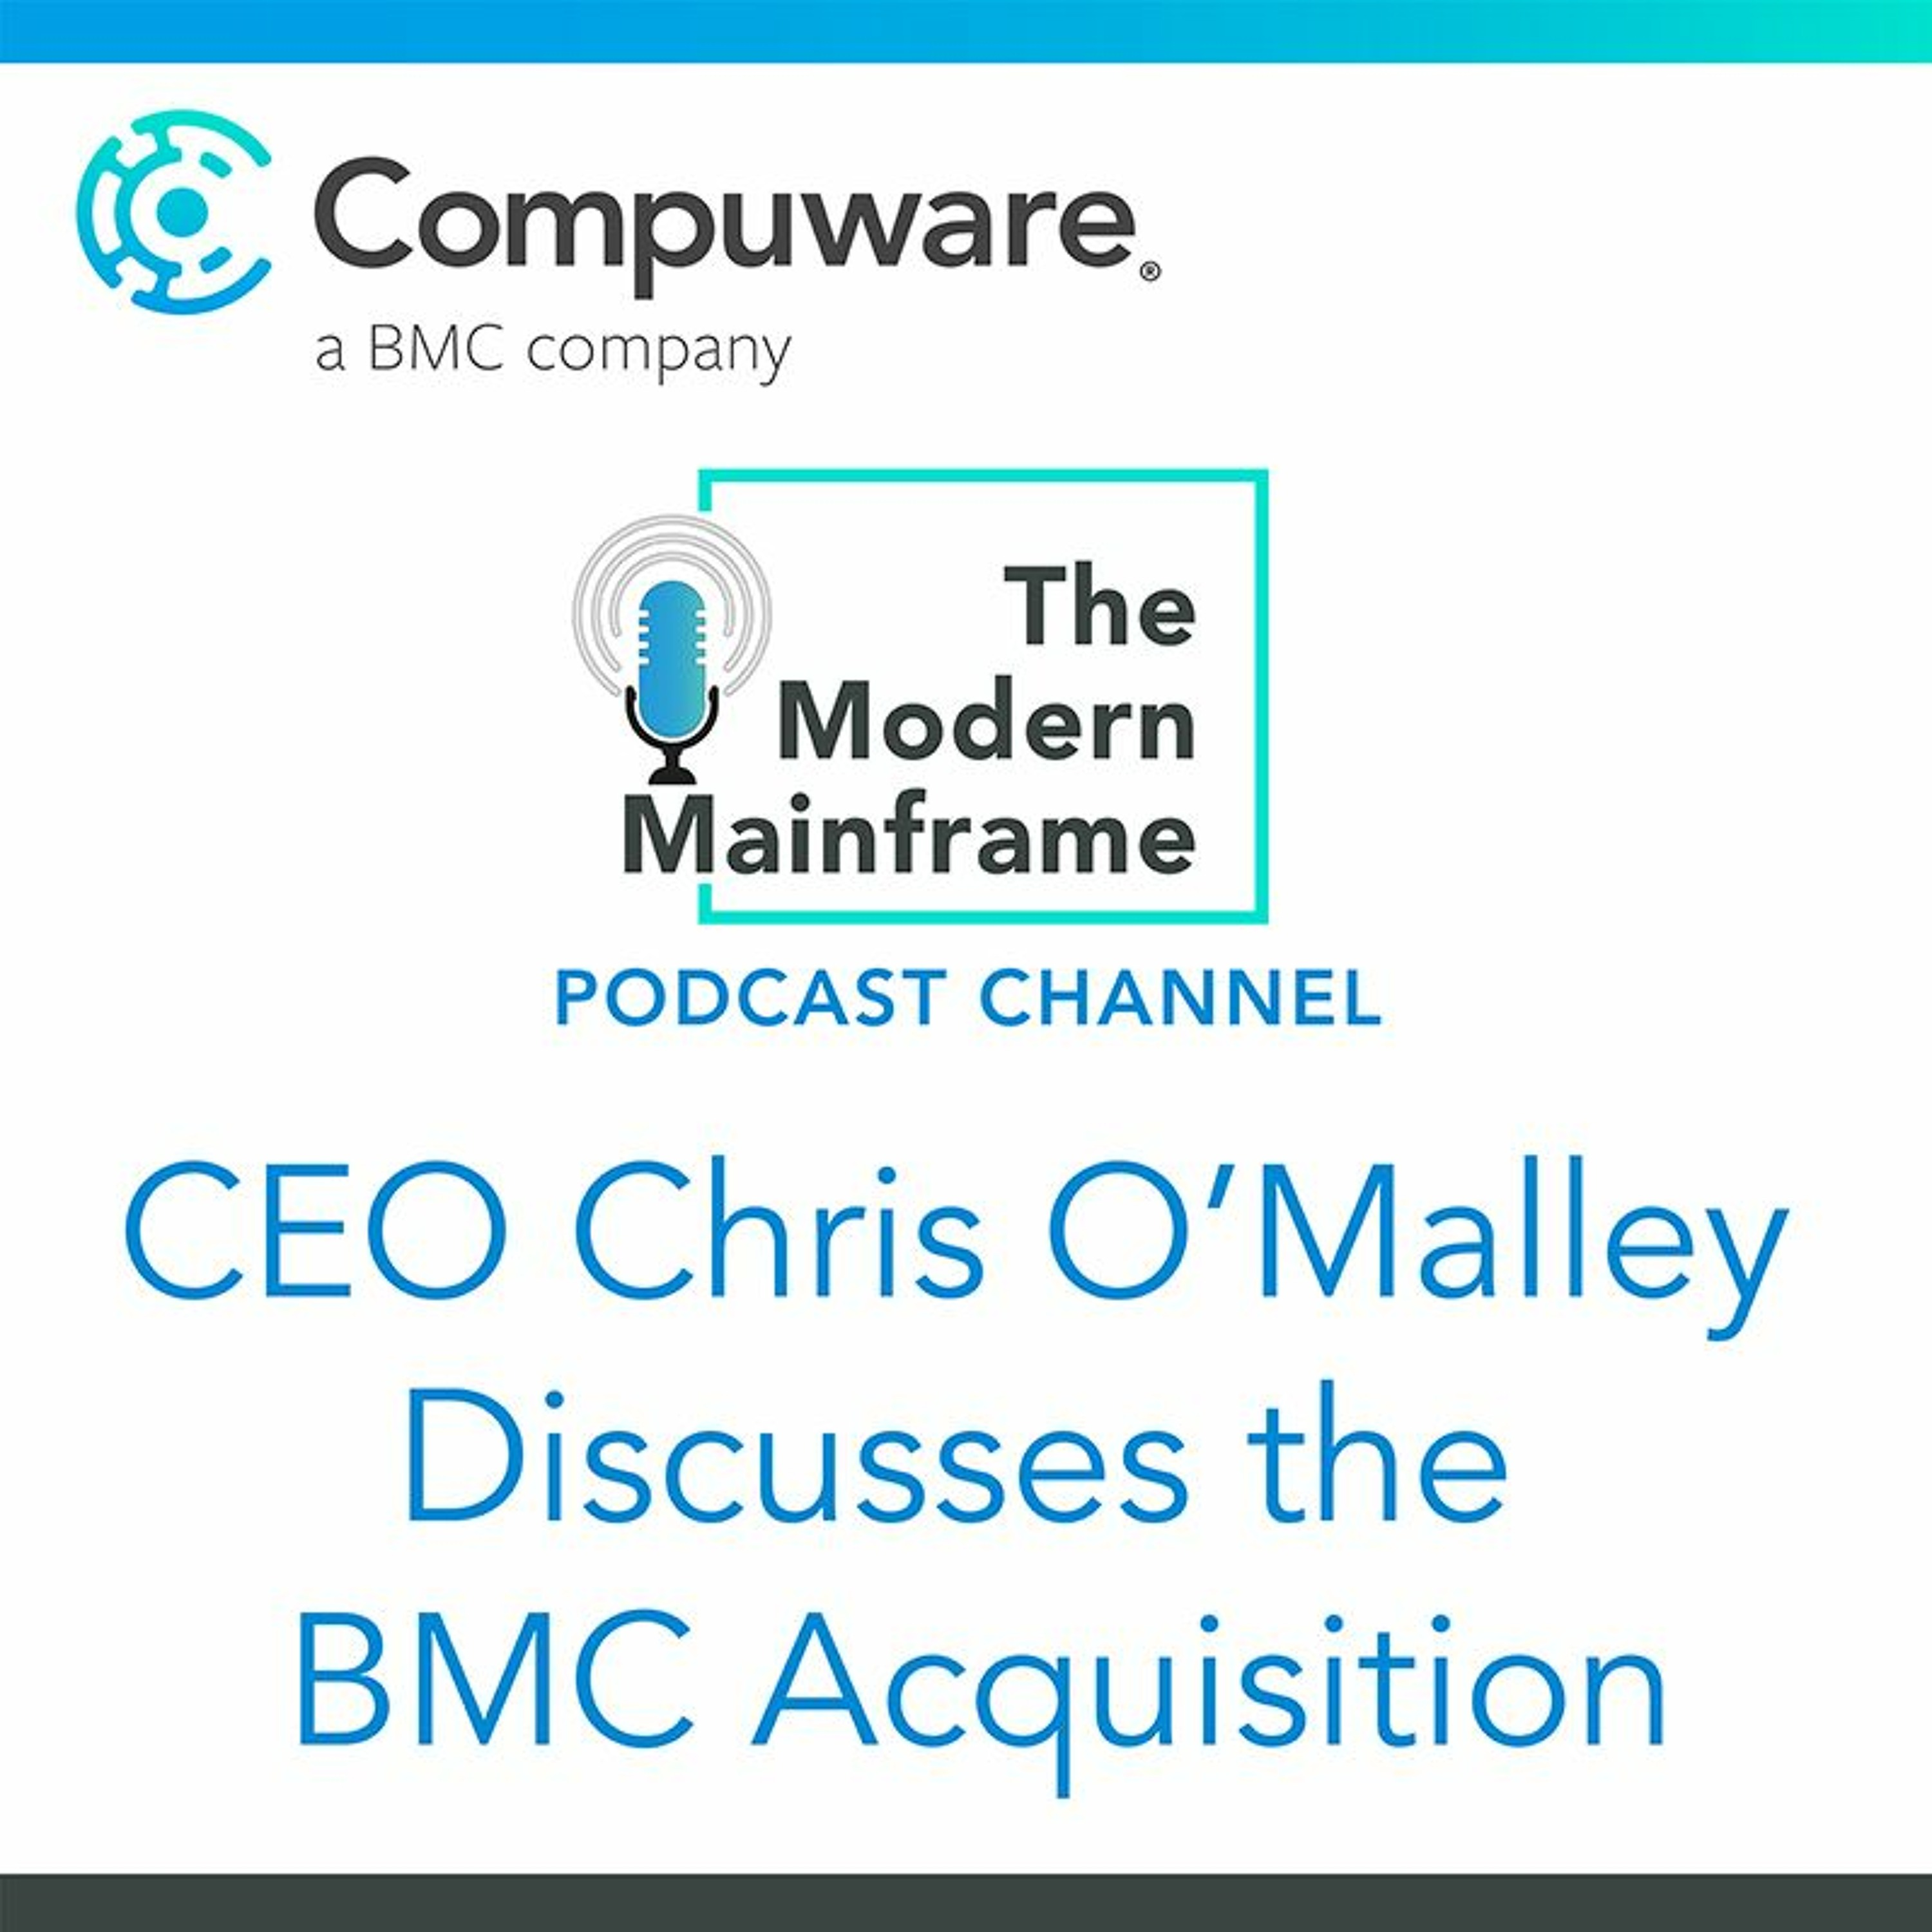 CEO Chris O'Malley Discusses the BMC Acquisition